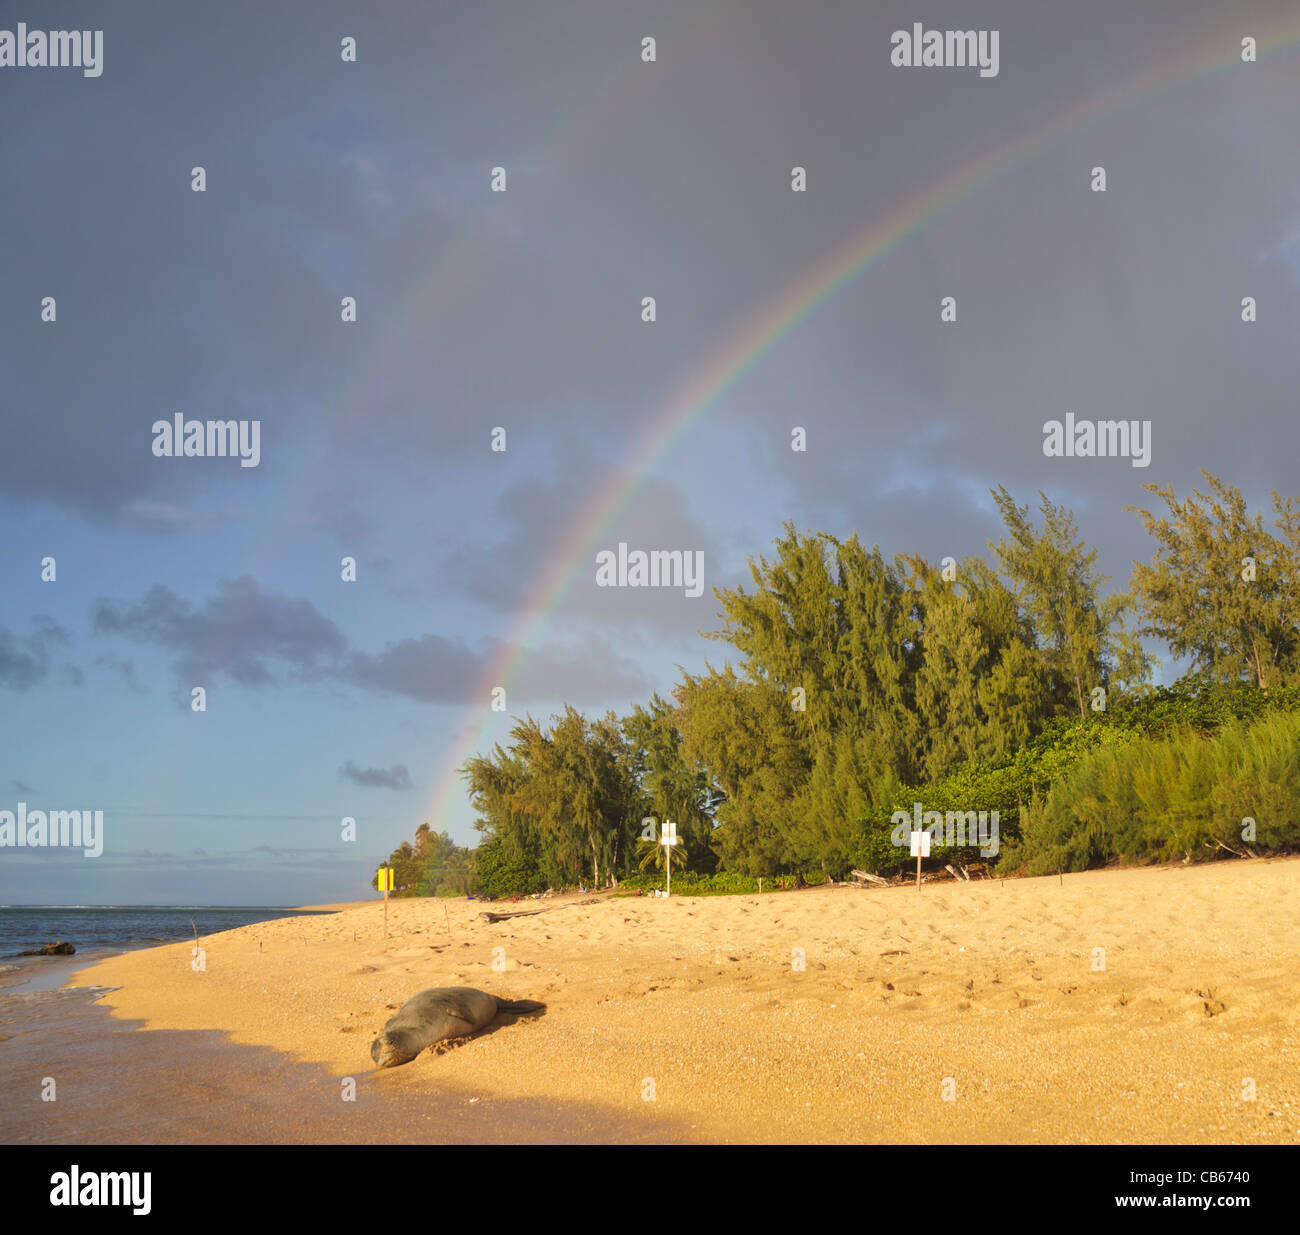 Hawaiian monk seal rests on beach in Haena, Kauai, near Tunnels Beach as double rainbows color the sky - Stock Image